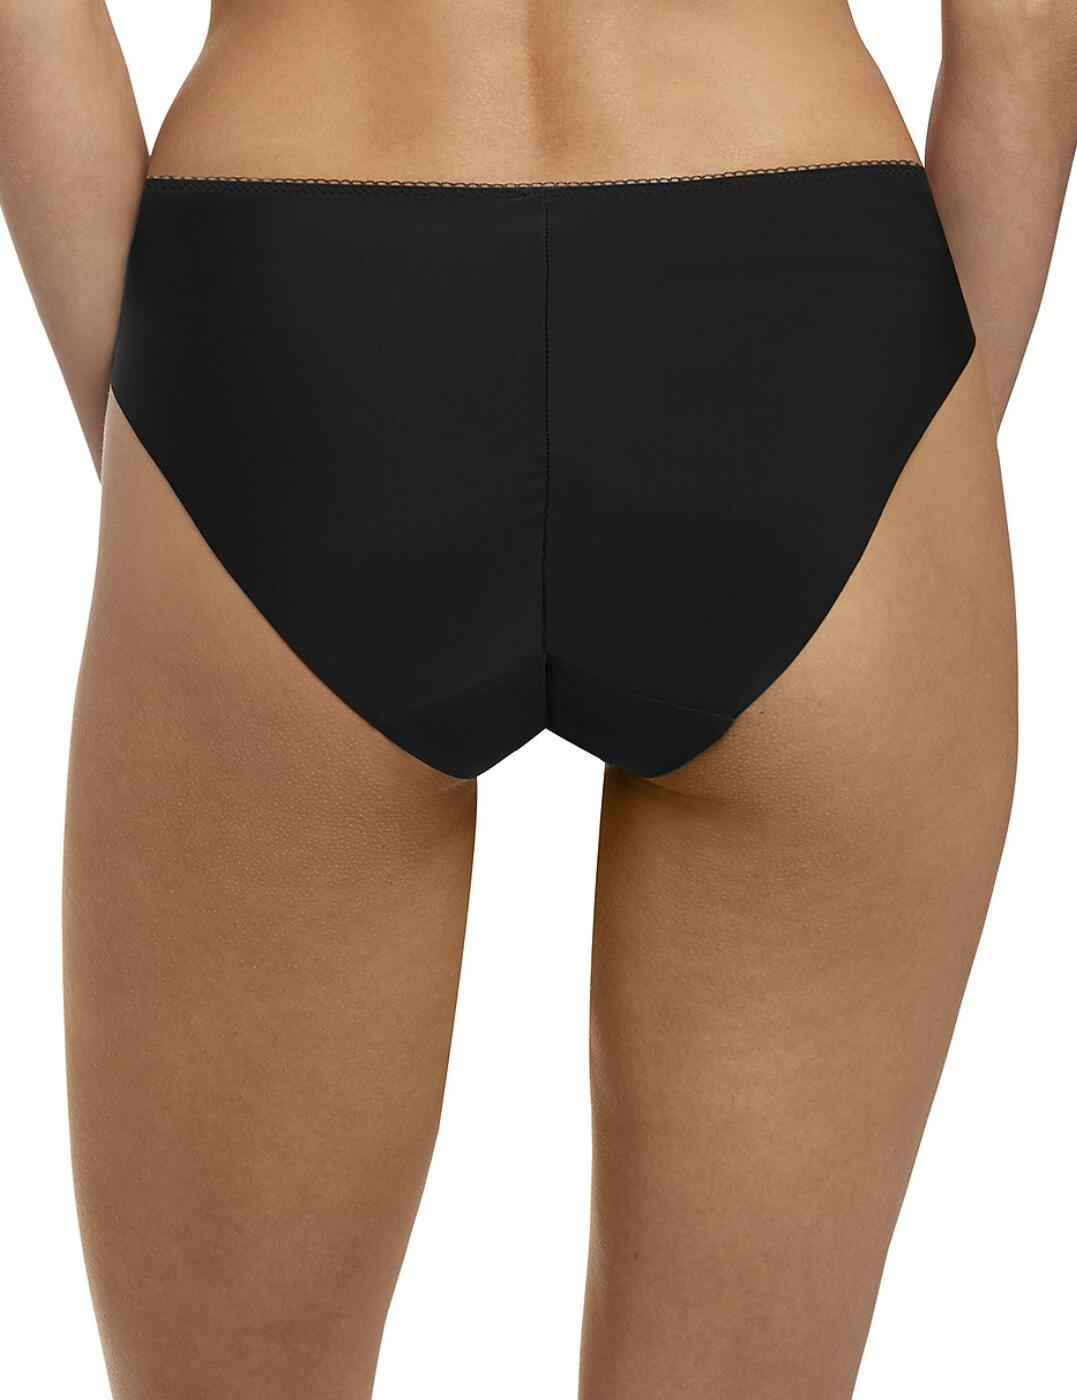 Fantasie Angelina Brief 9555 Womens Knickers New Lingerie